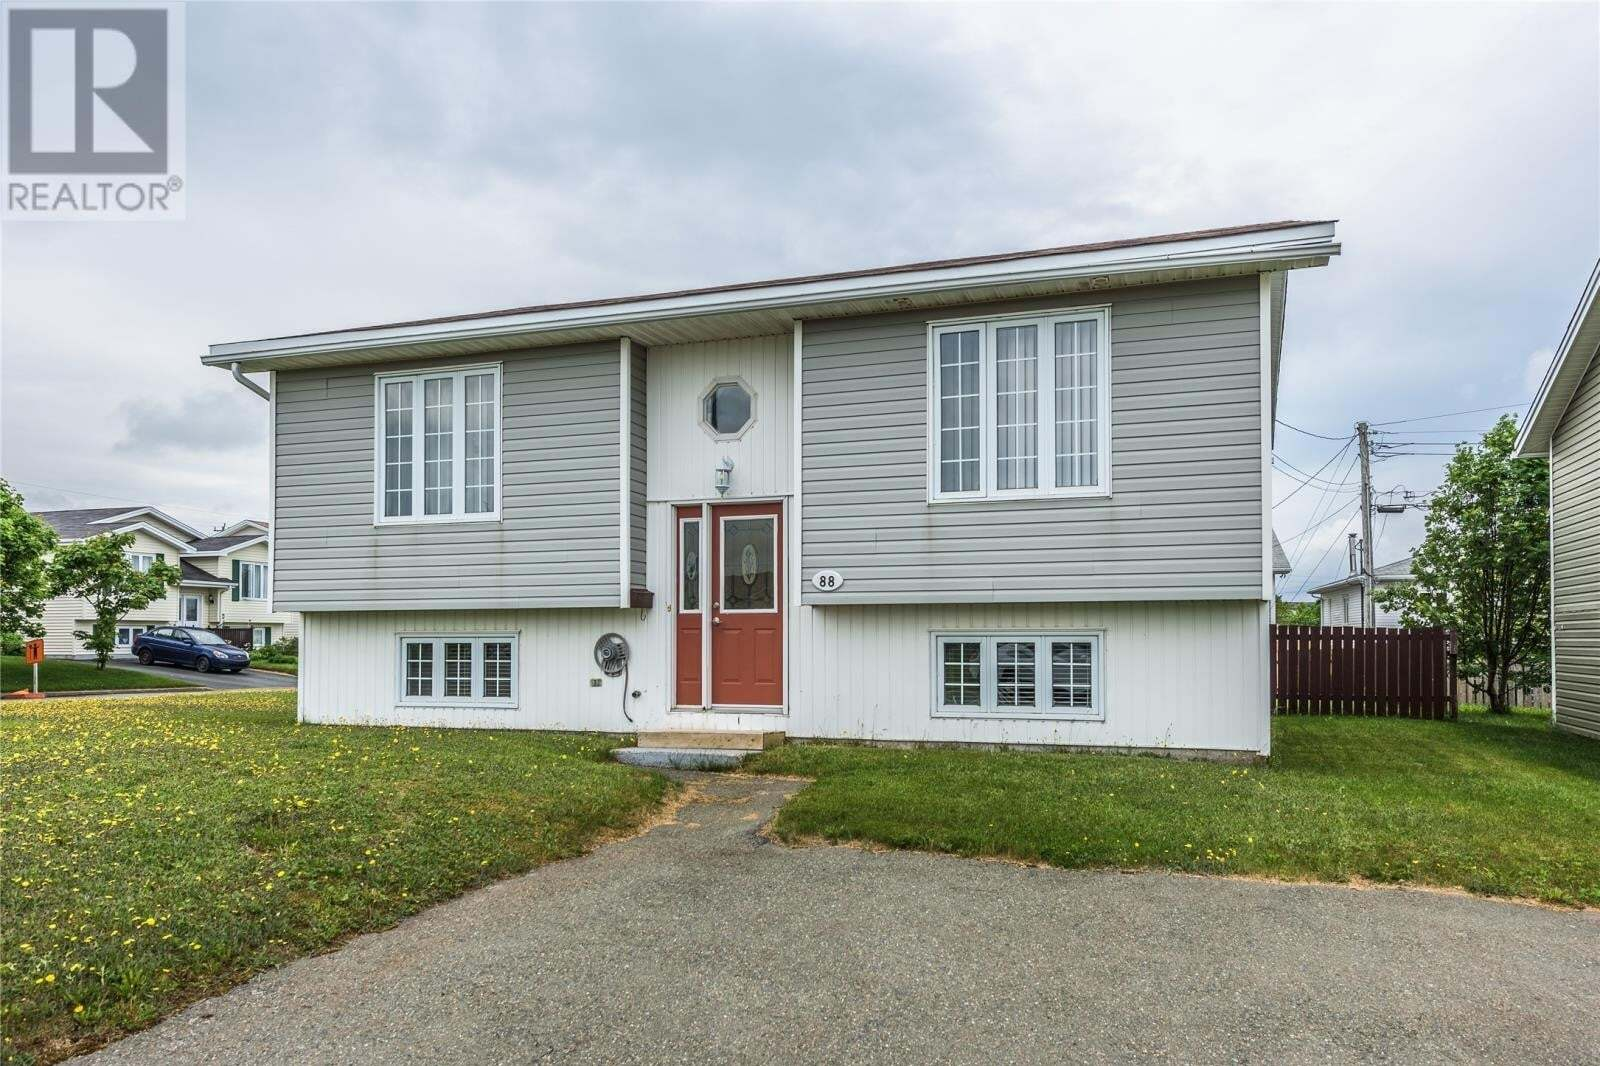 House for sale at 88 Oflaherty Cres Mount Pearl Newfoundland - MLS: 1216771